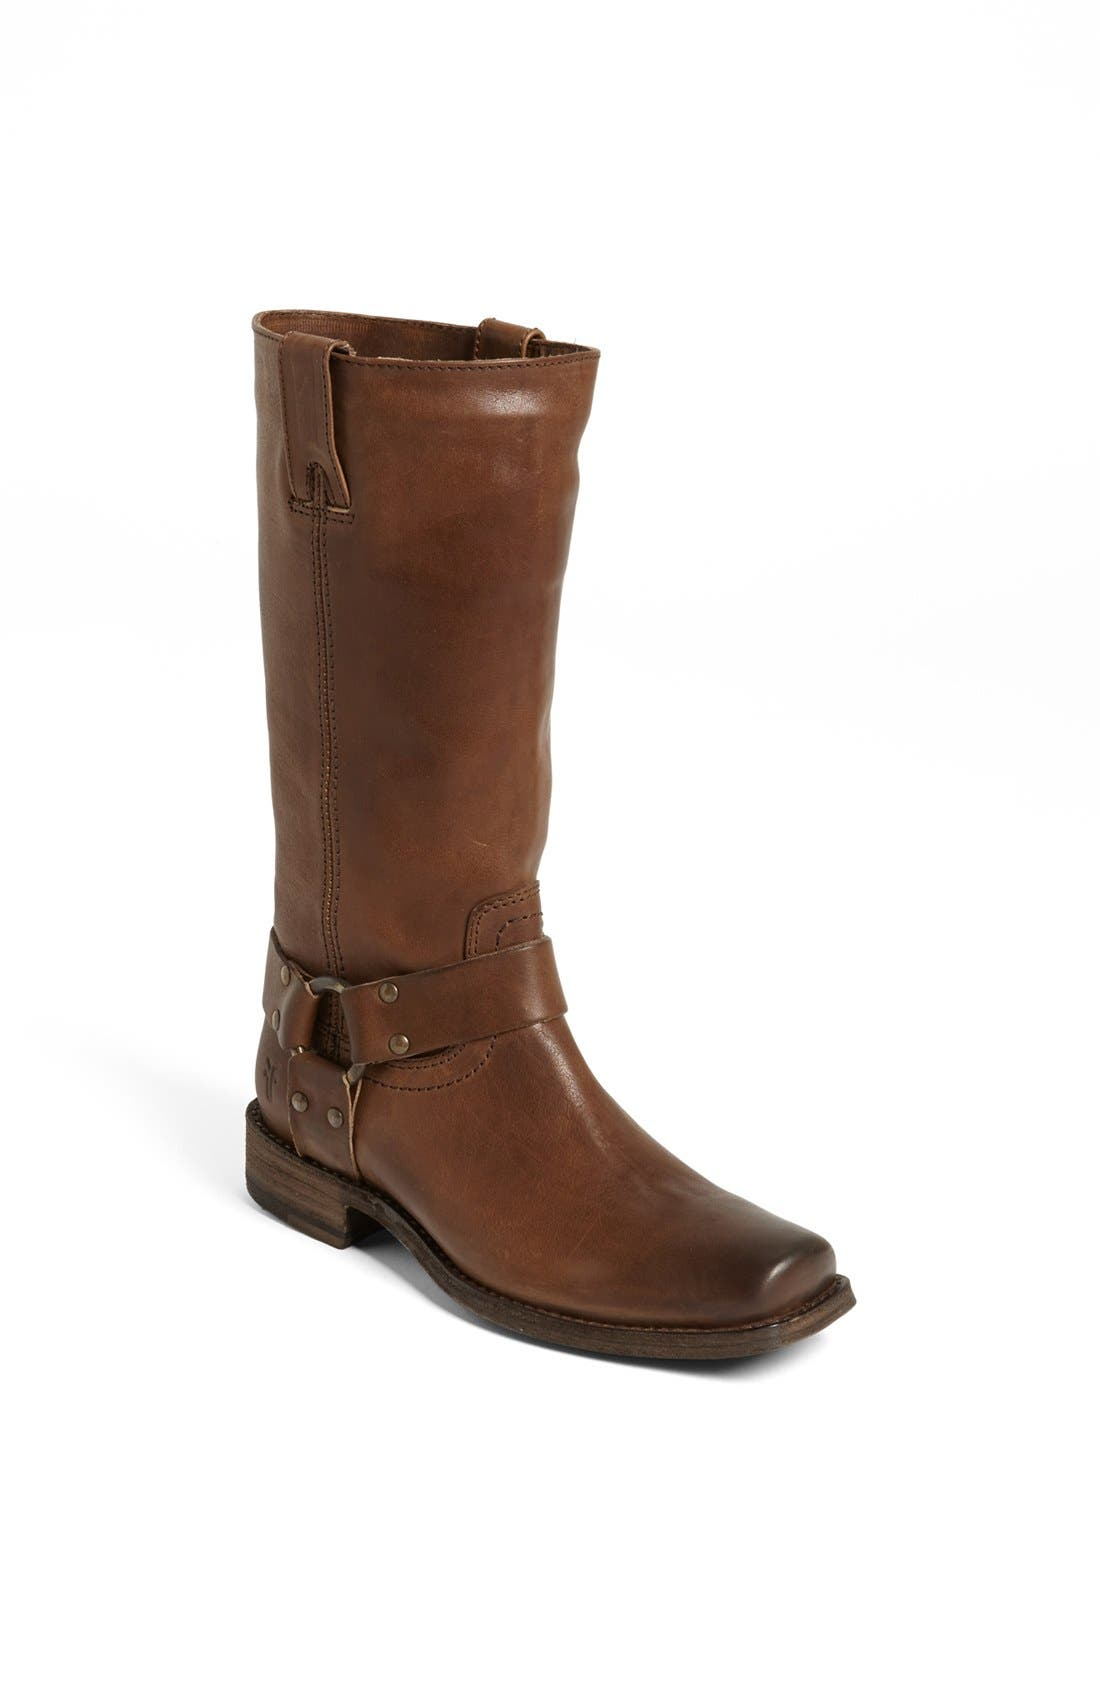 Main Image - Frye 'Smith' Harness Tall Boot